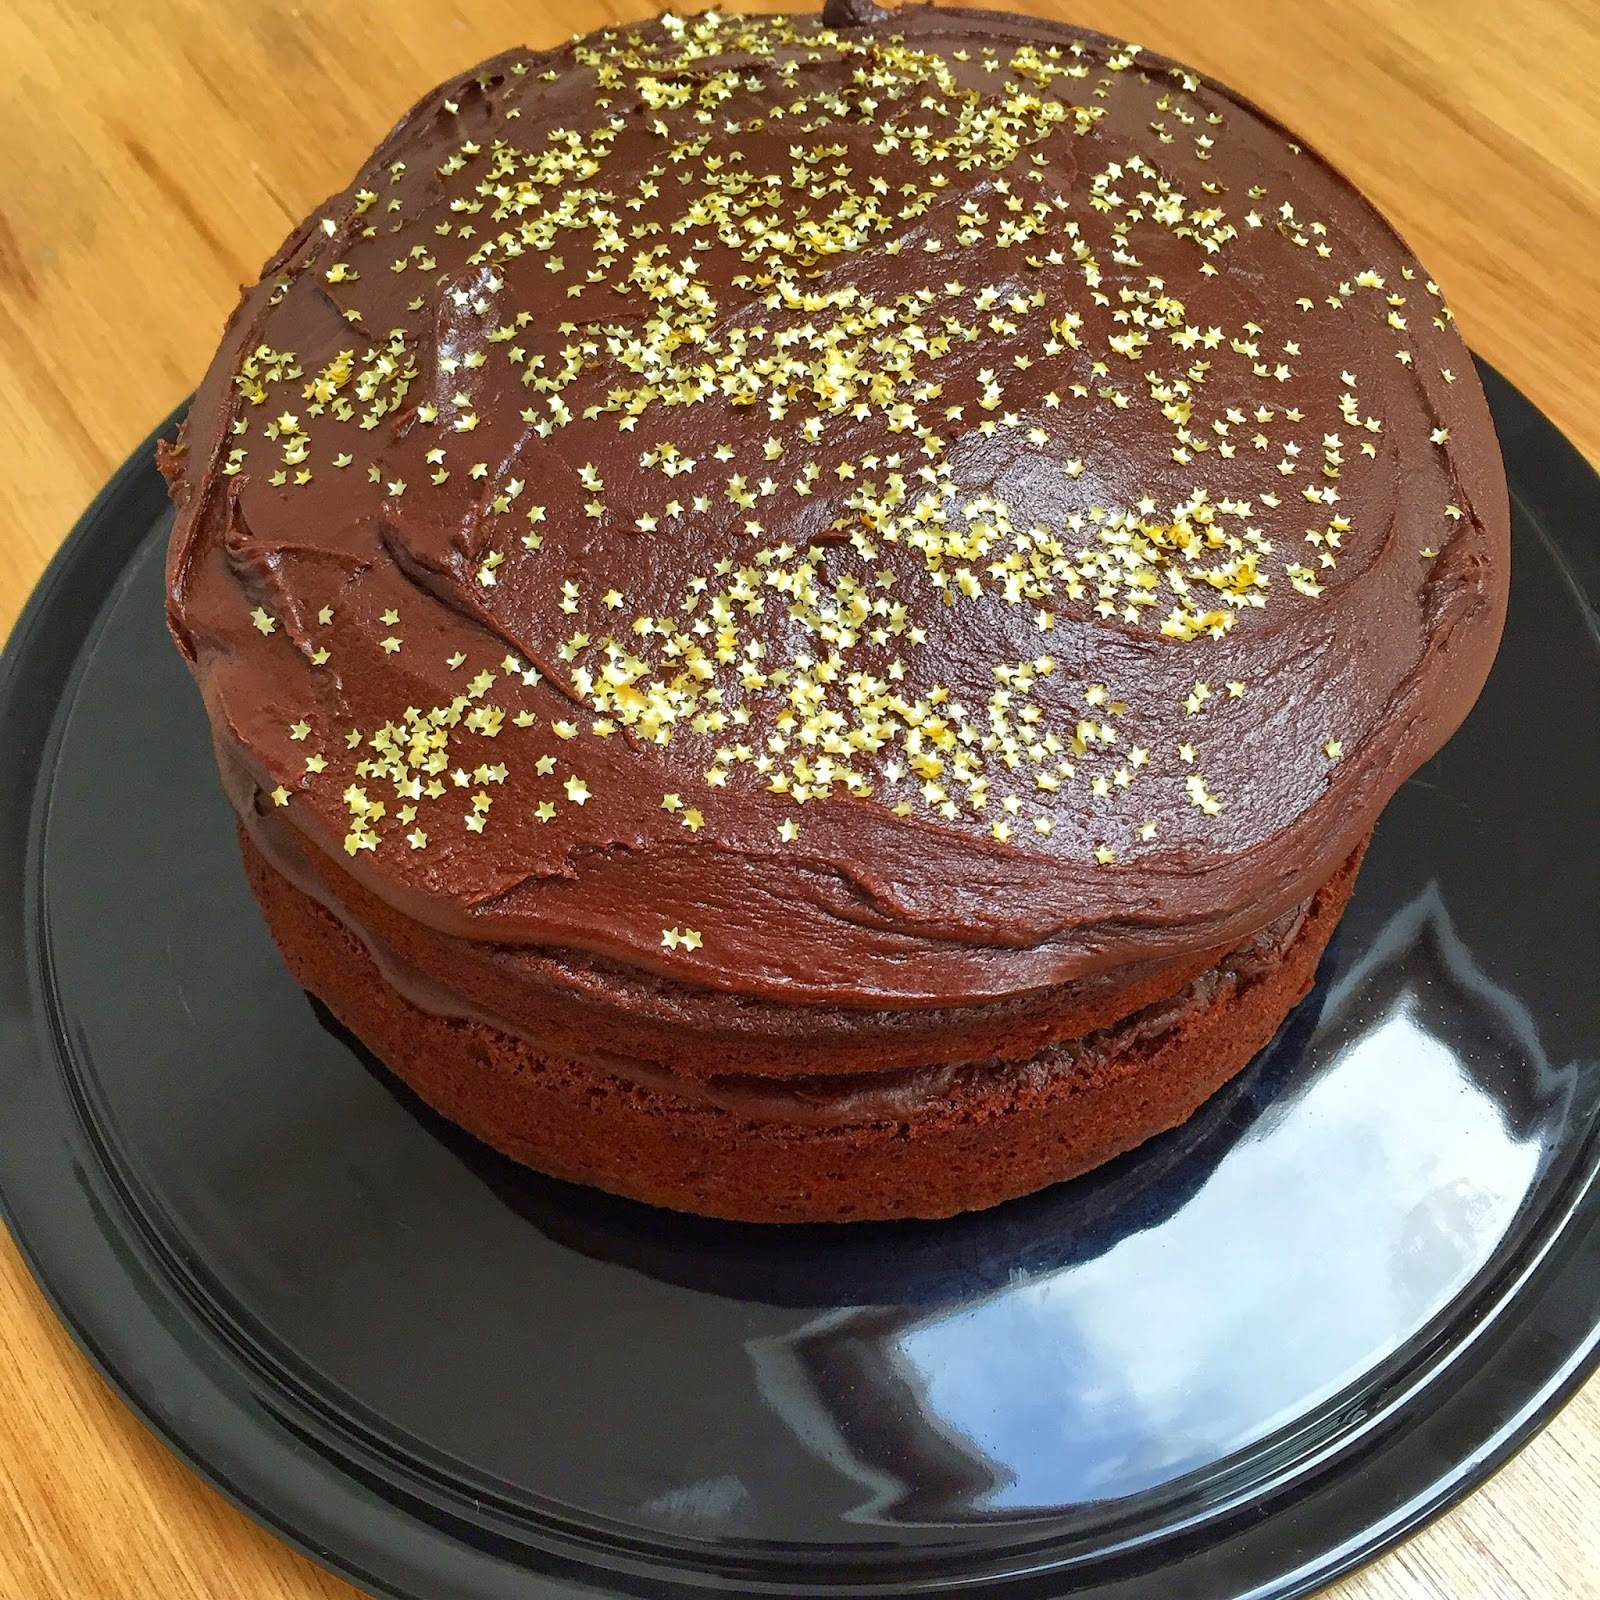 Mary Berry's Chocolate Sponge Cake